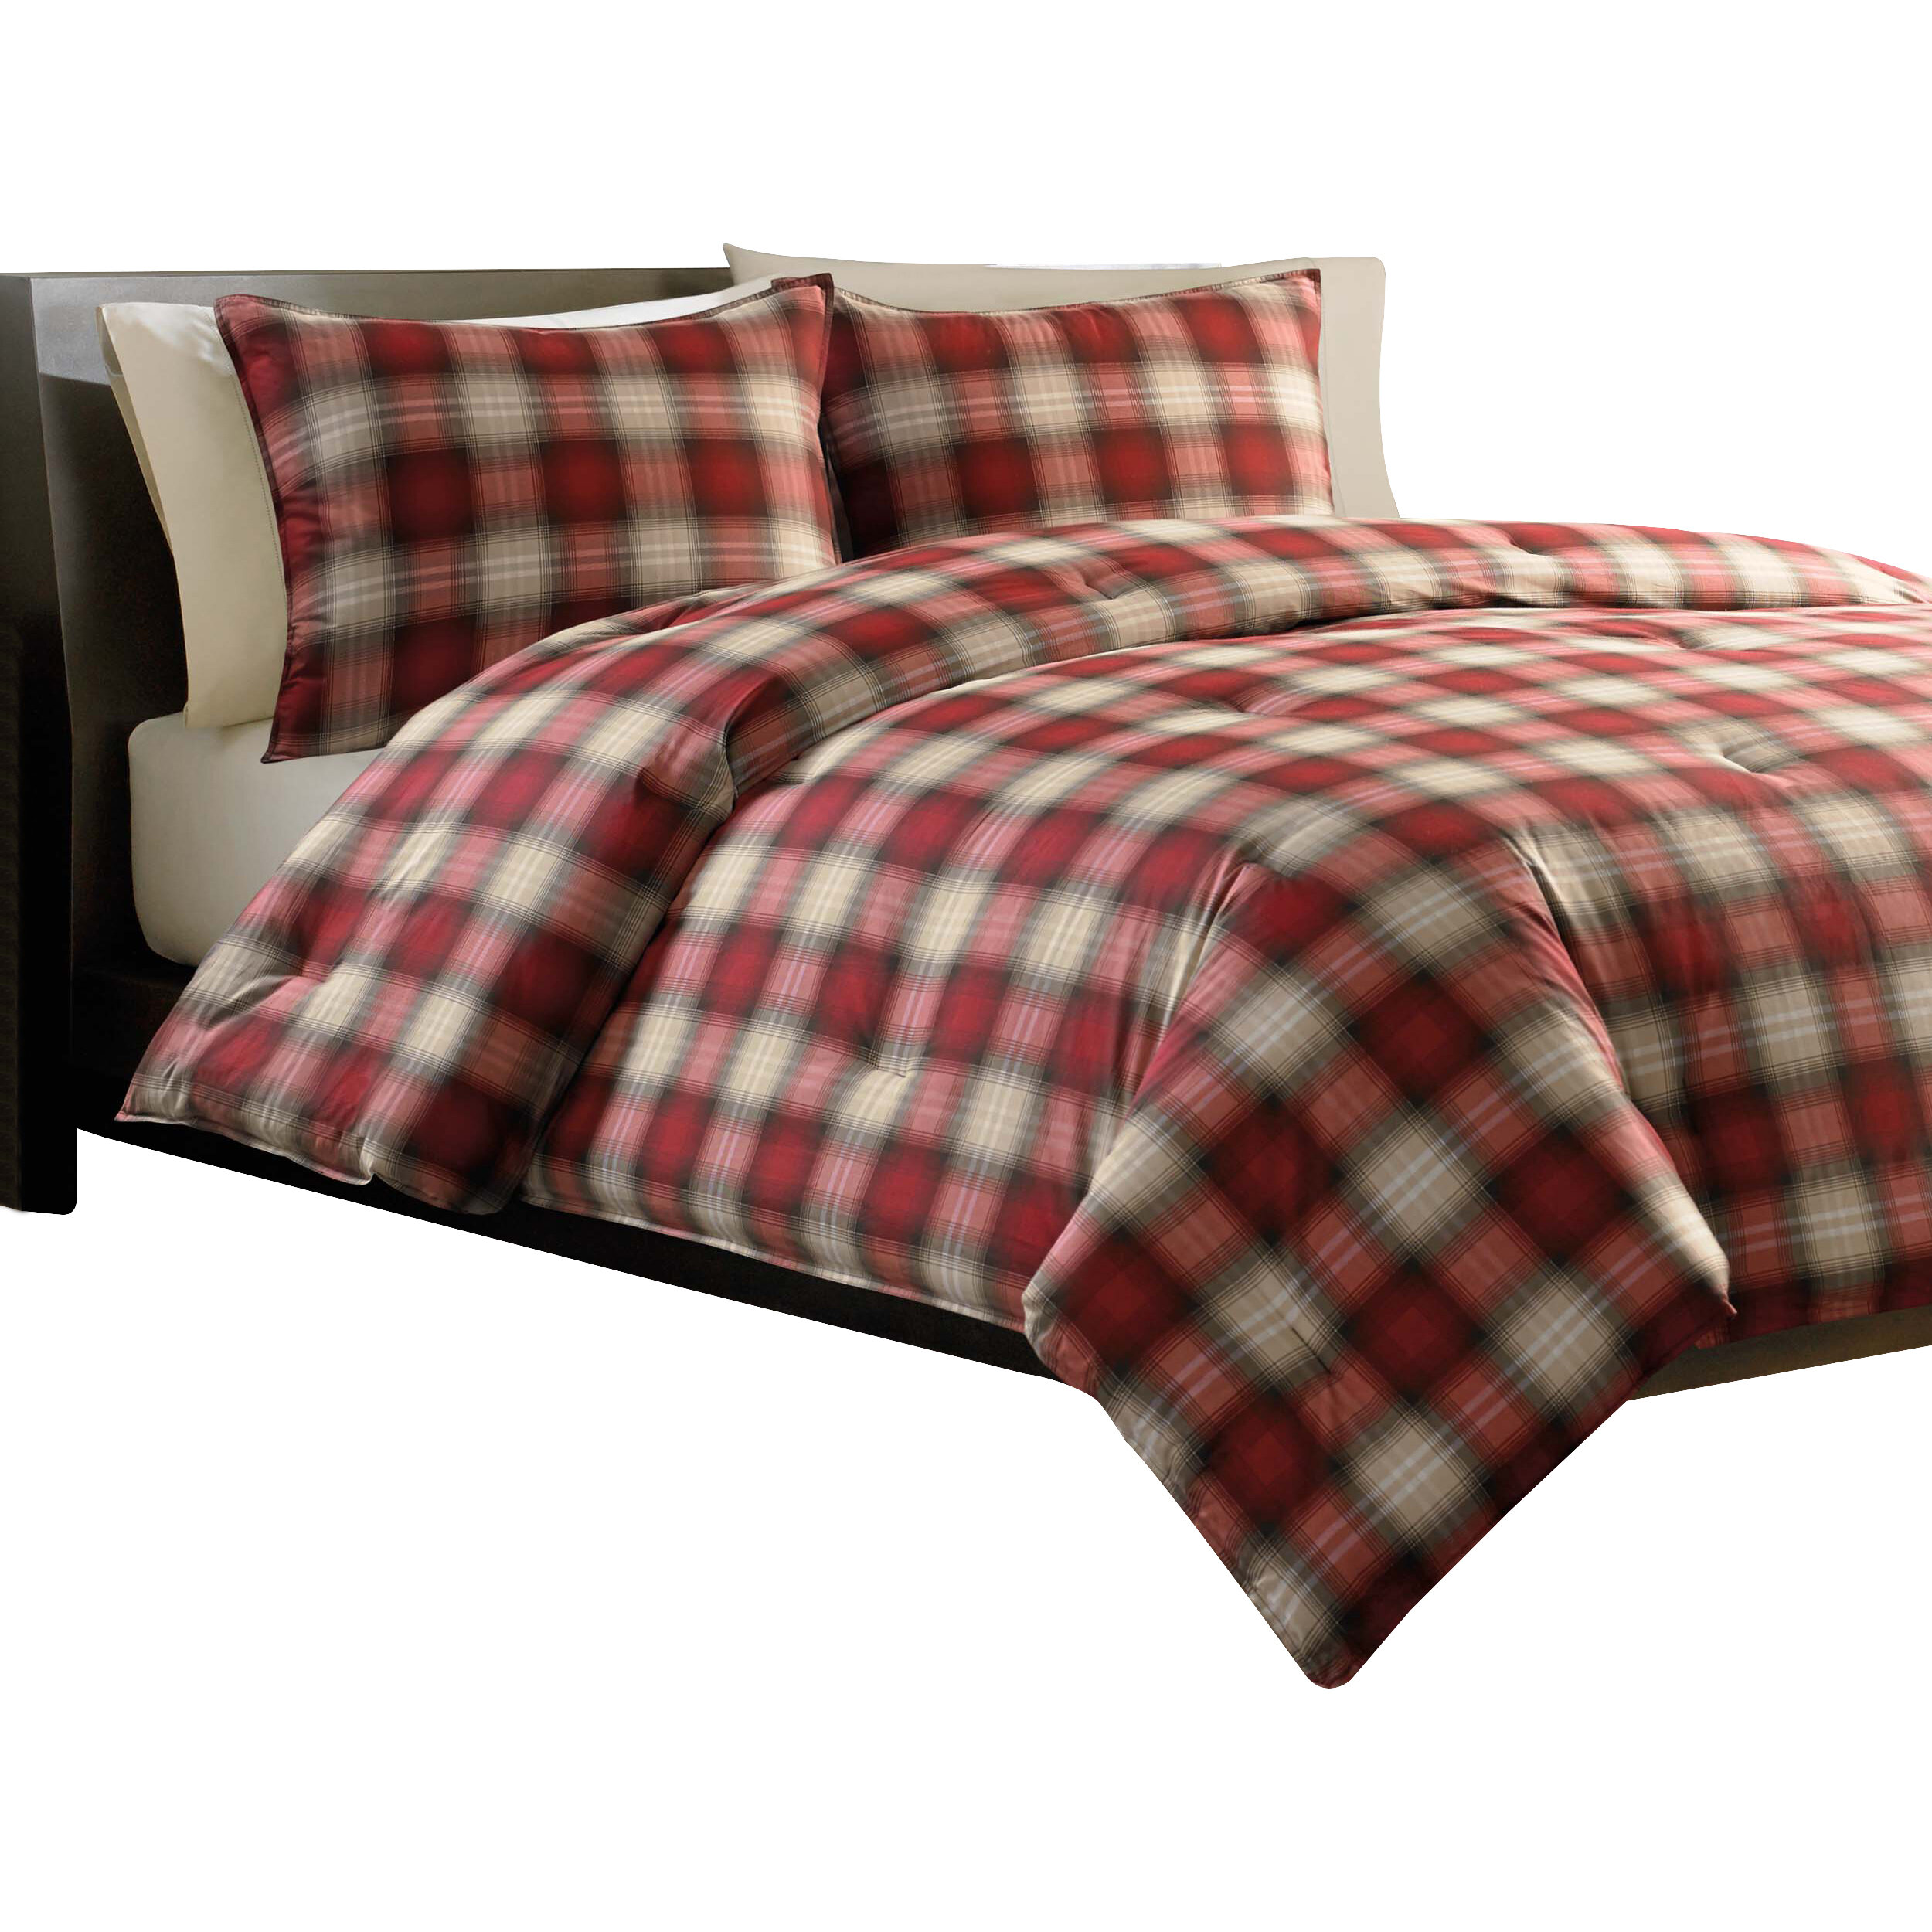 piece cabin comforter bedding bamboo the pillowcases cover duvet and set sheet in comforters wind woods bed